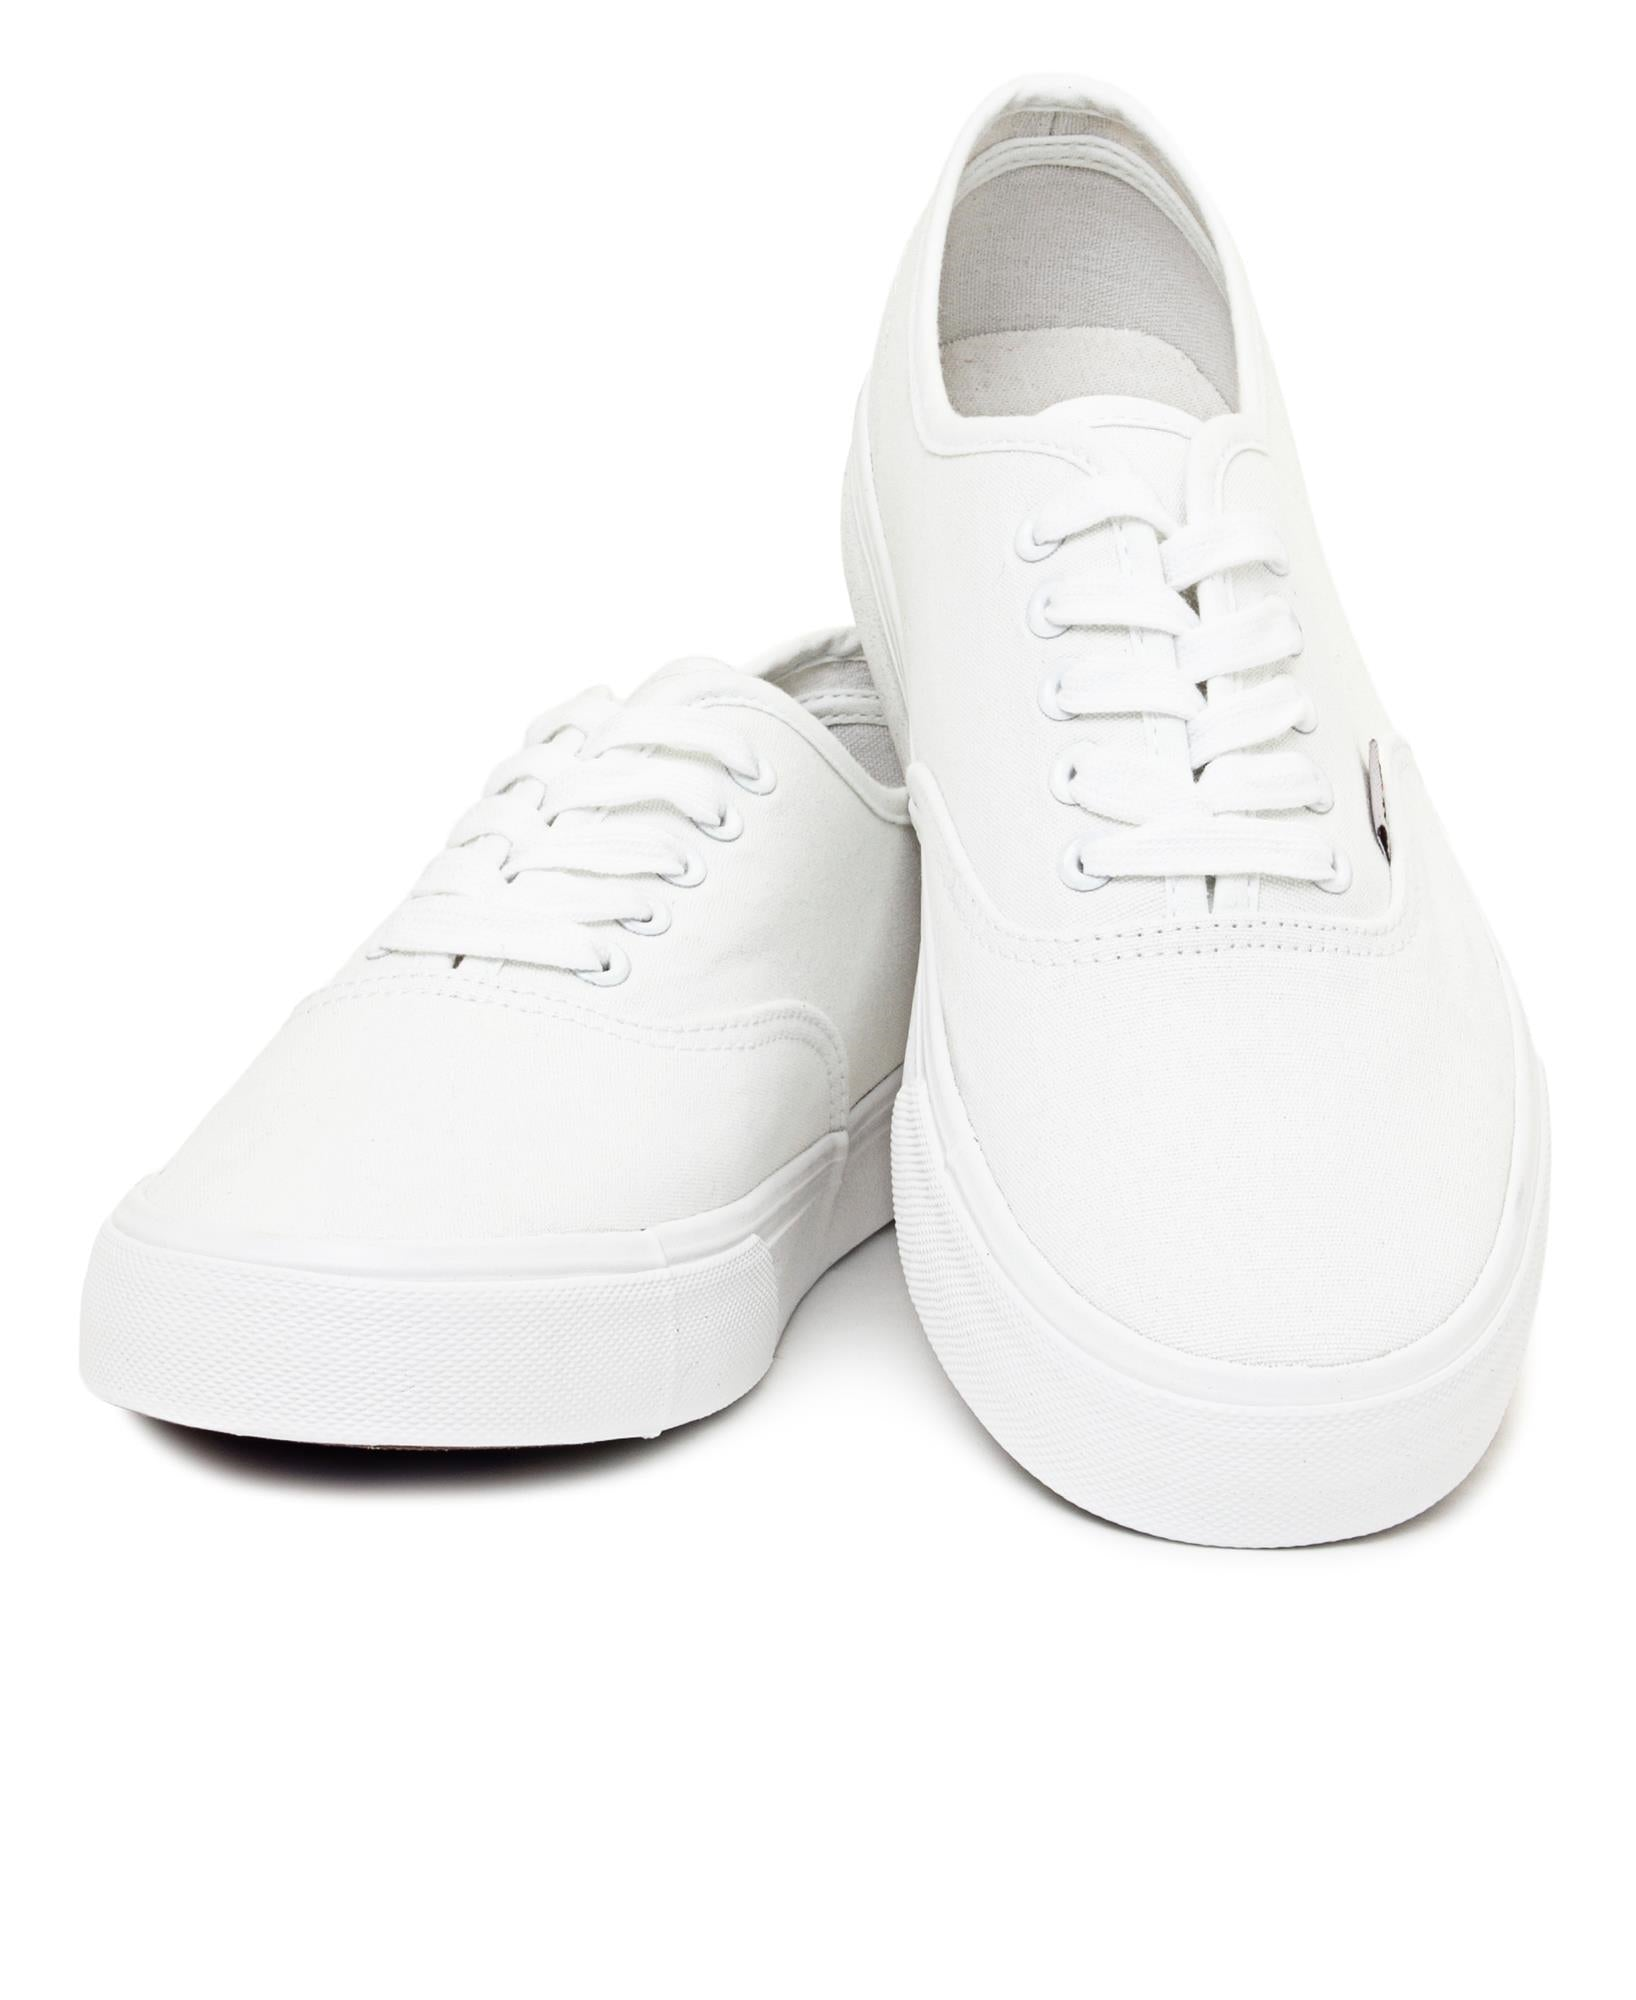 Men's Barca Sneakers - White